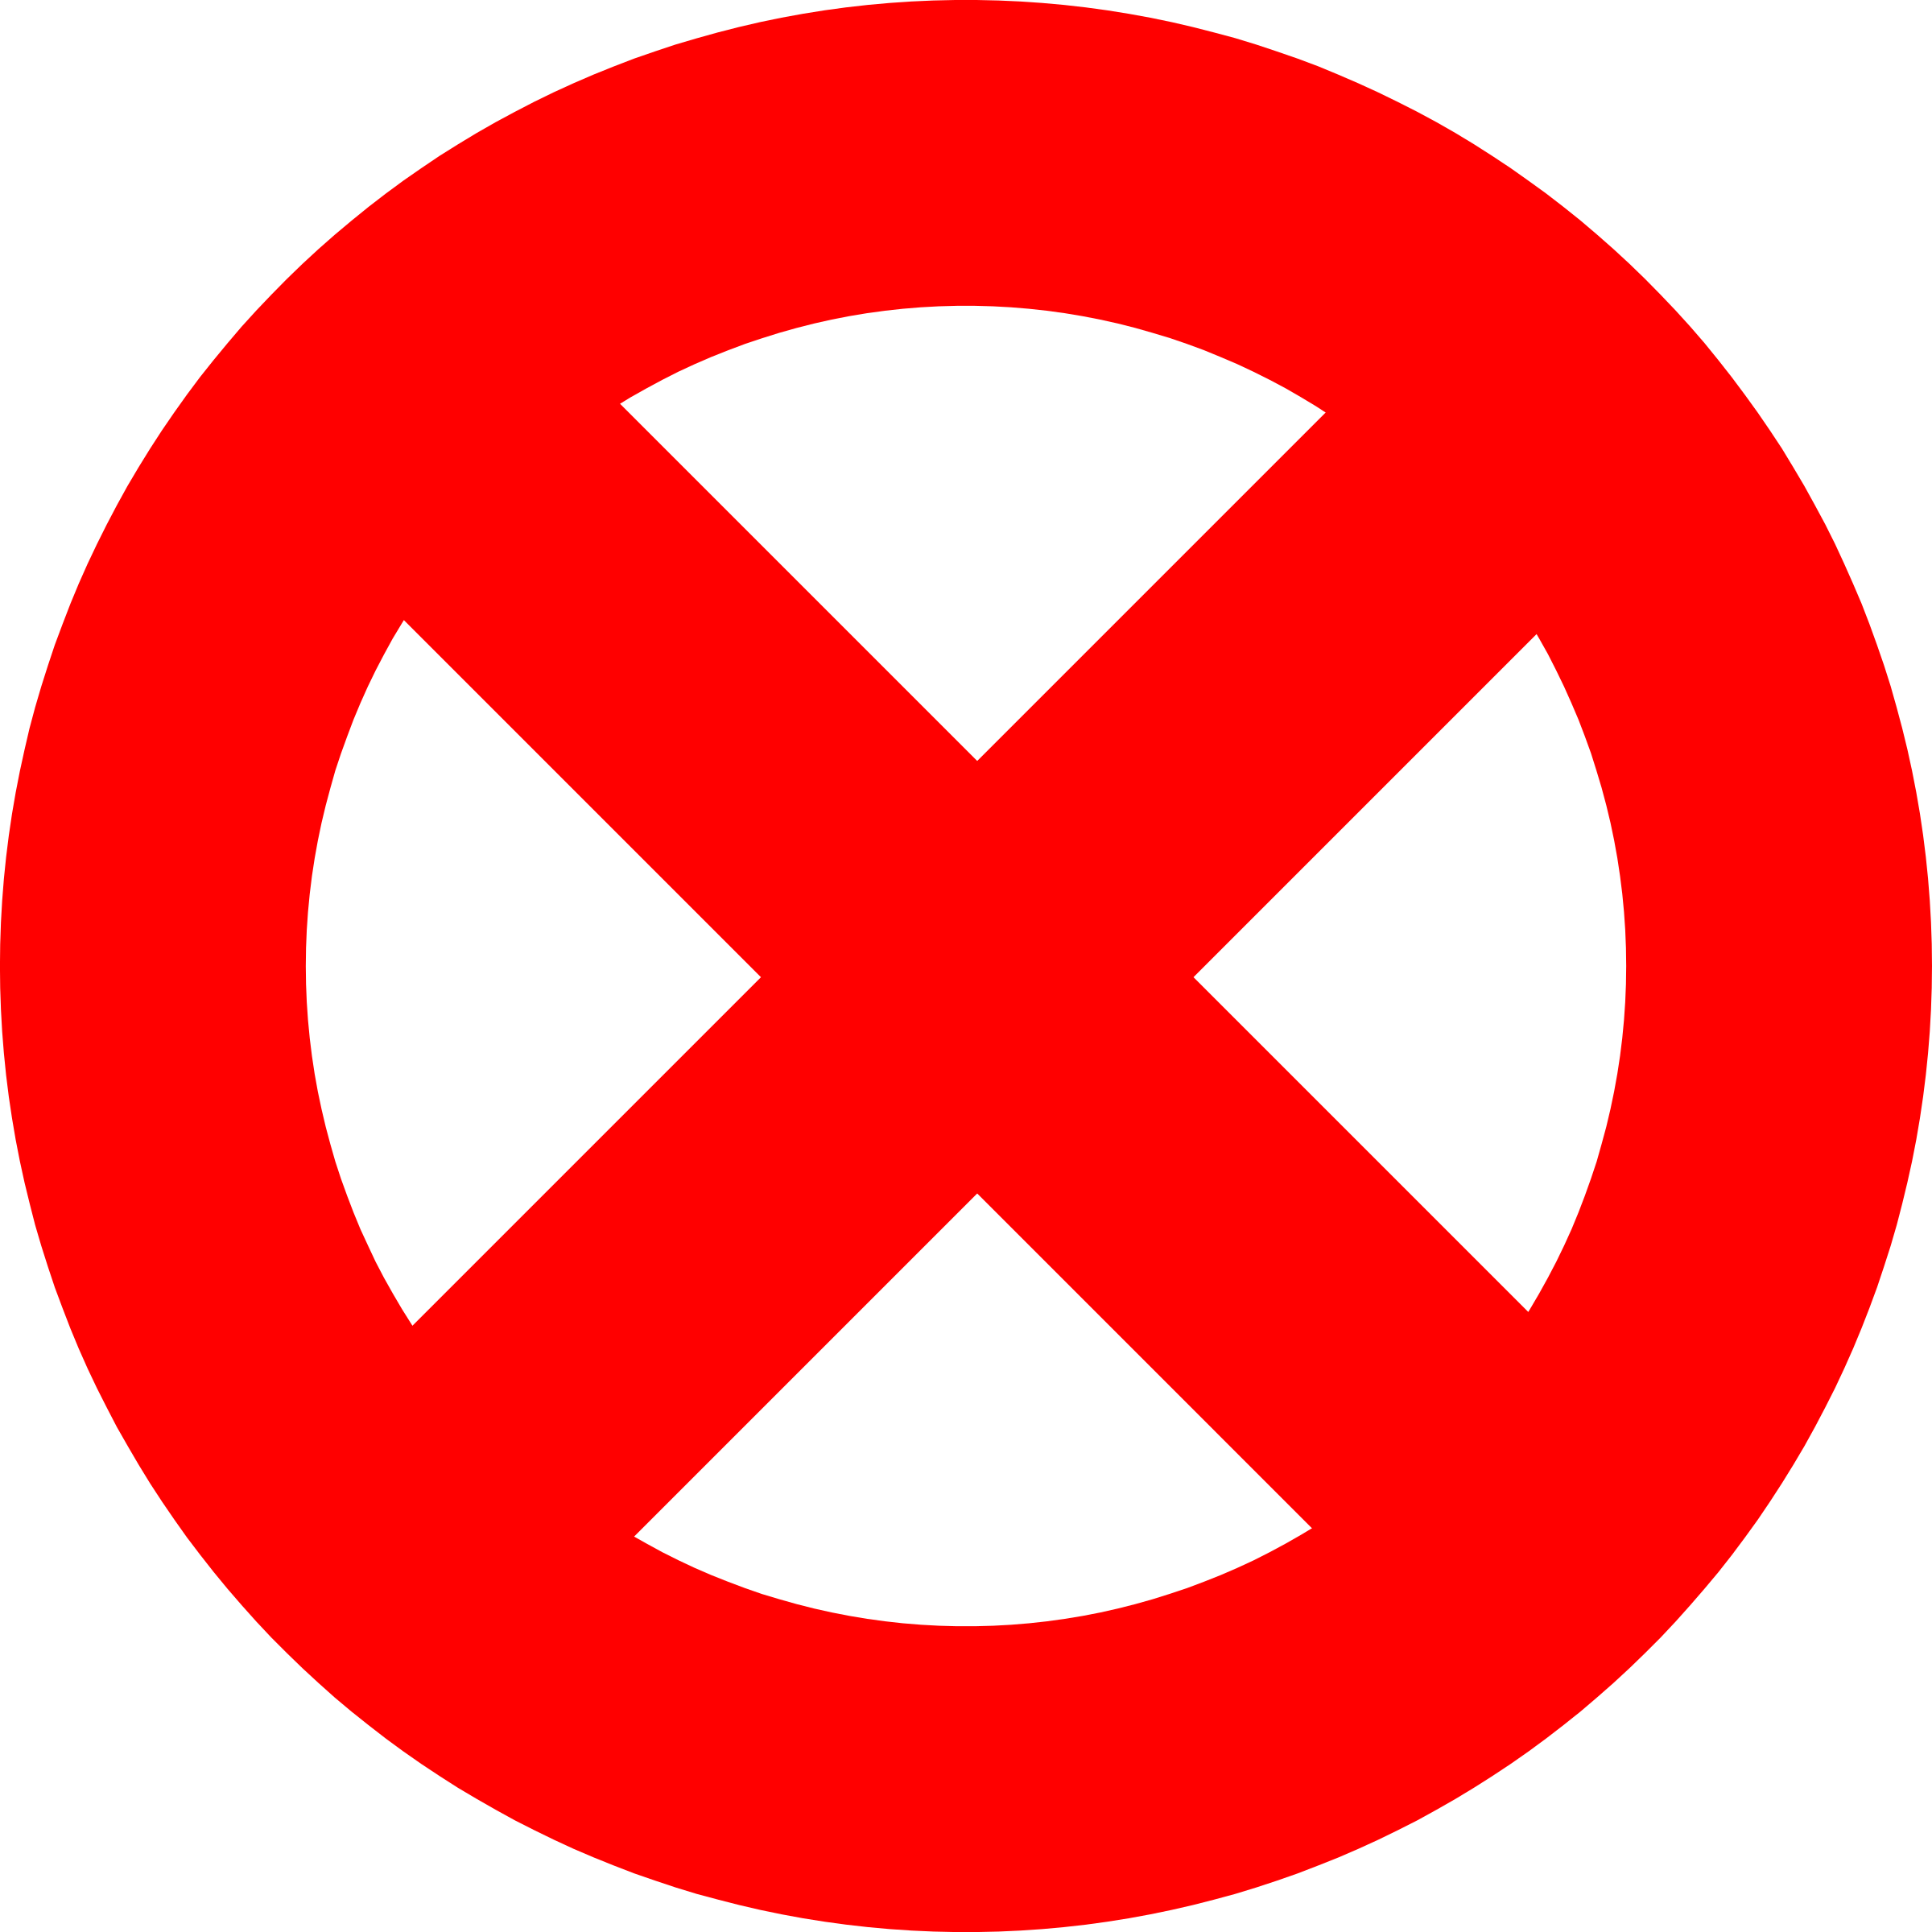 Clipart prohibited sign.